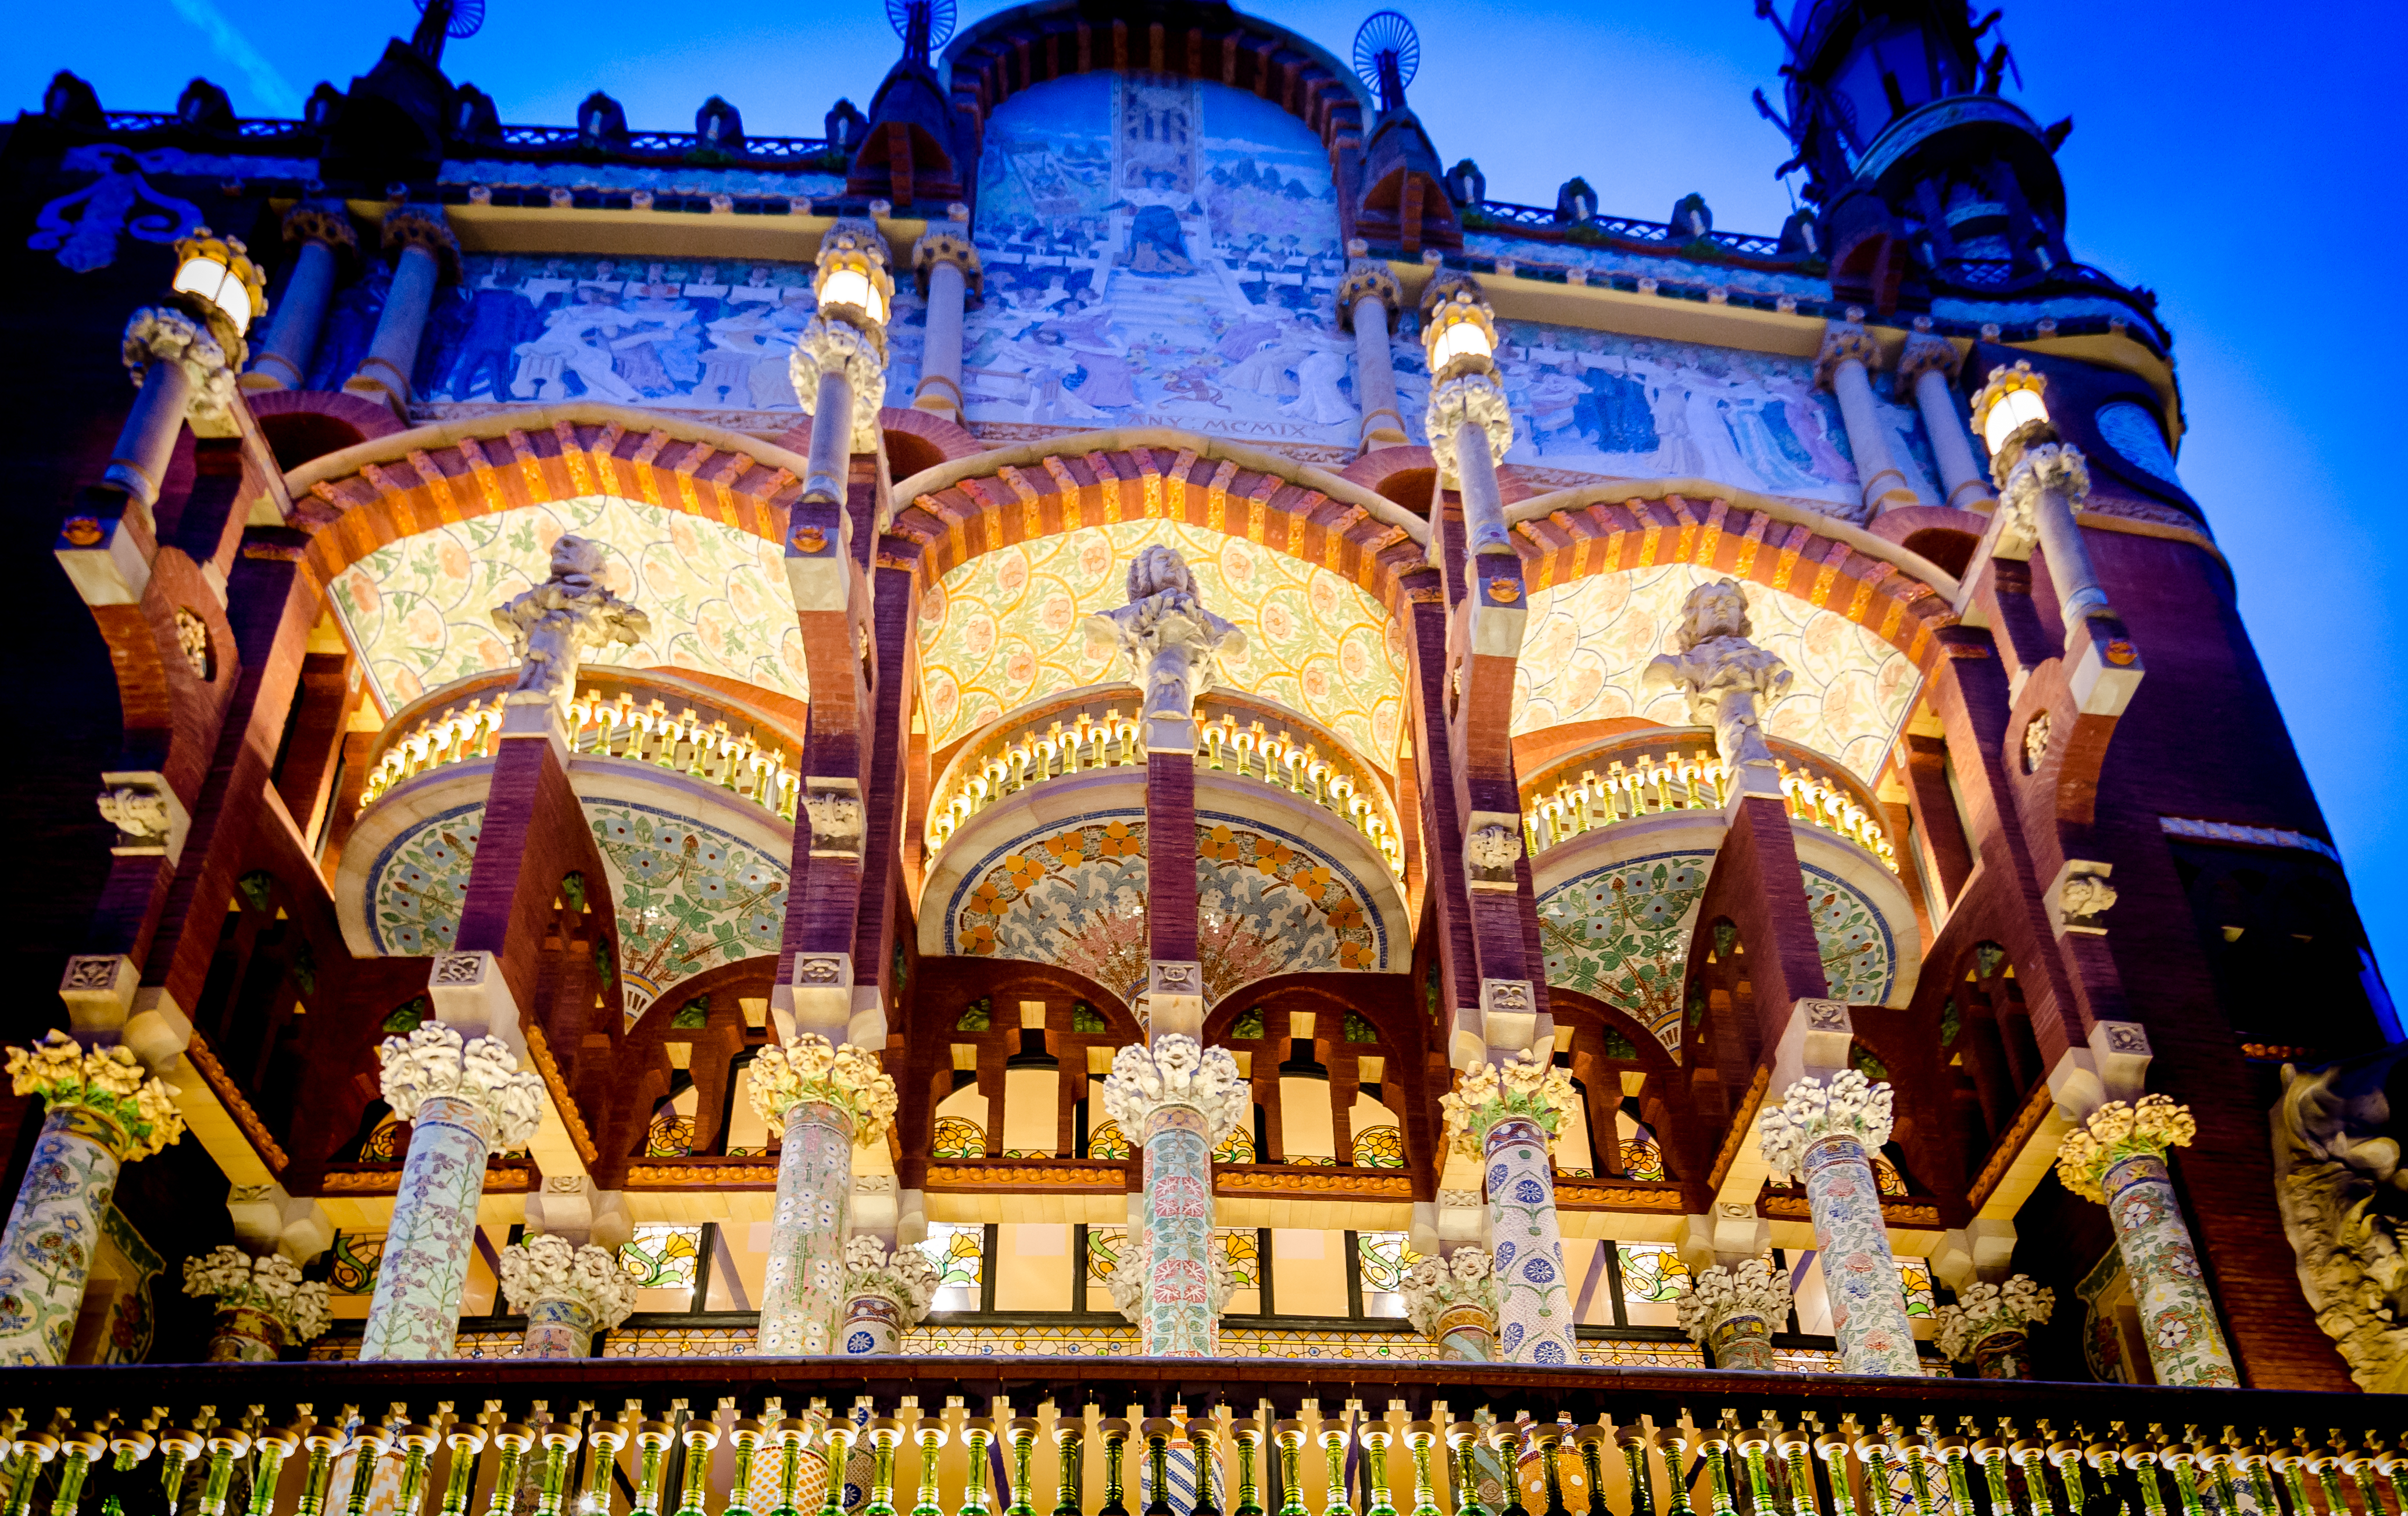 File:Palau de la Música Catalana at night - DS4 8757.jpg ...